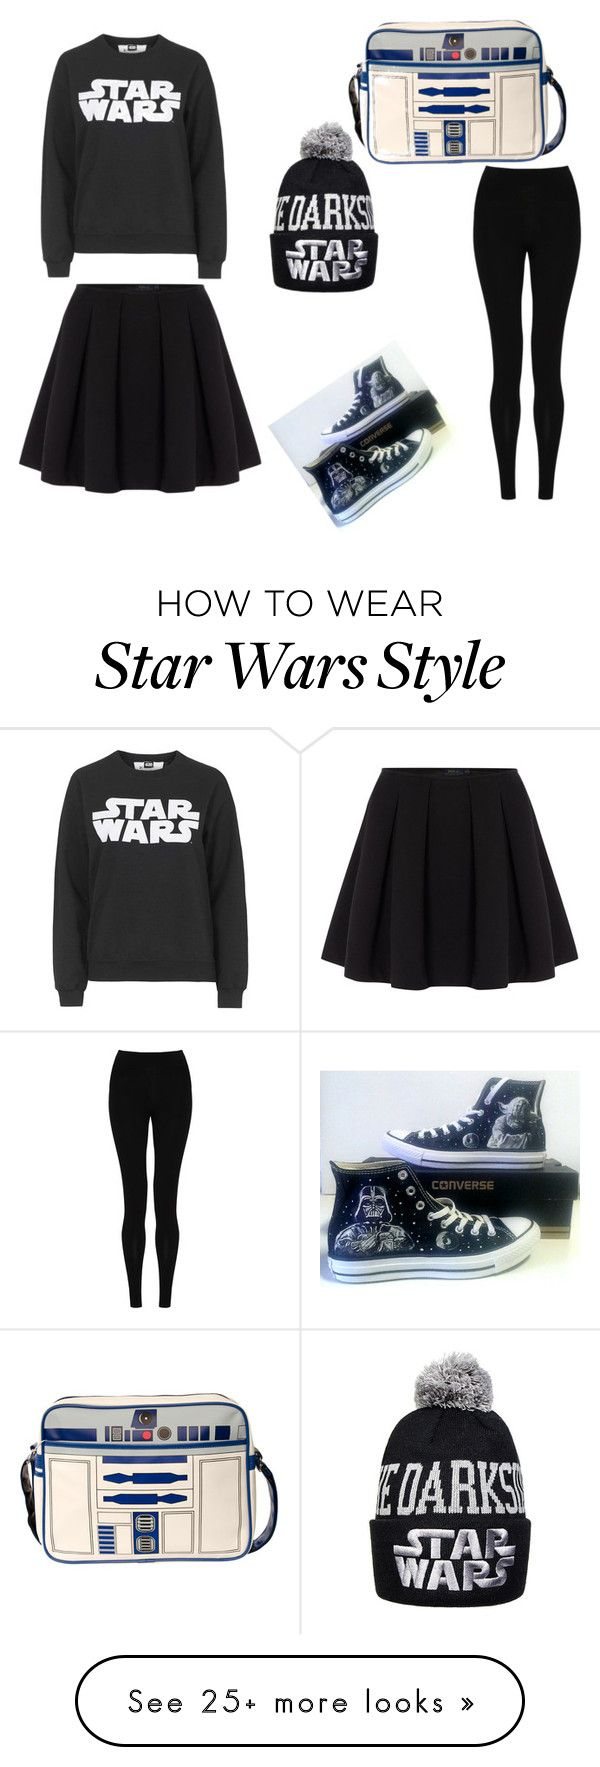 """Star Wars edition"" by acaswift on Polyvore featuring Tee and Cake, M&S Collection, Polo Ralph Lauren and Converse"